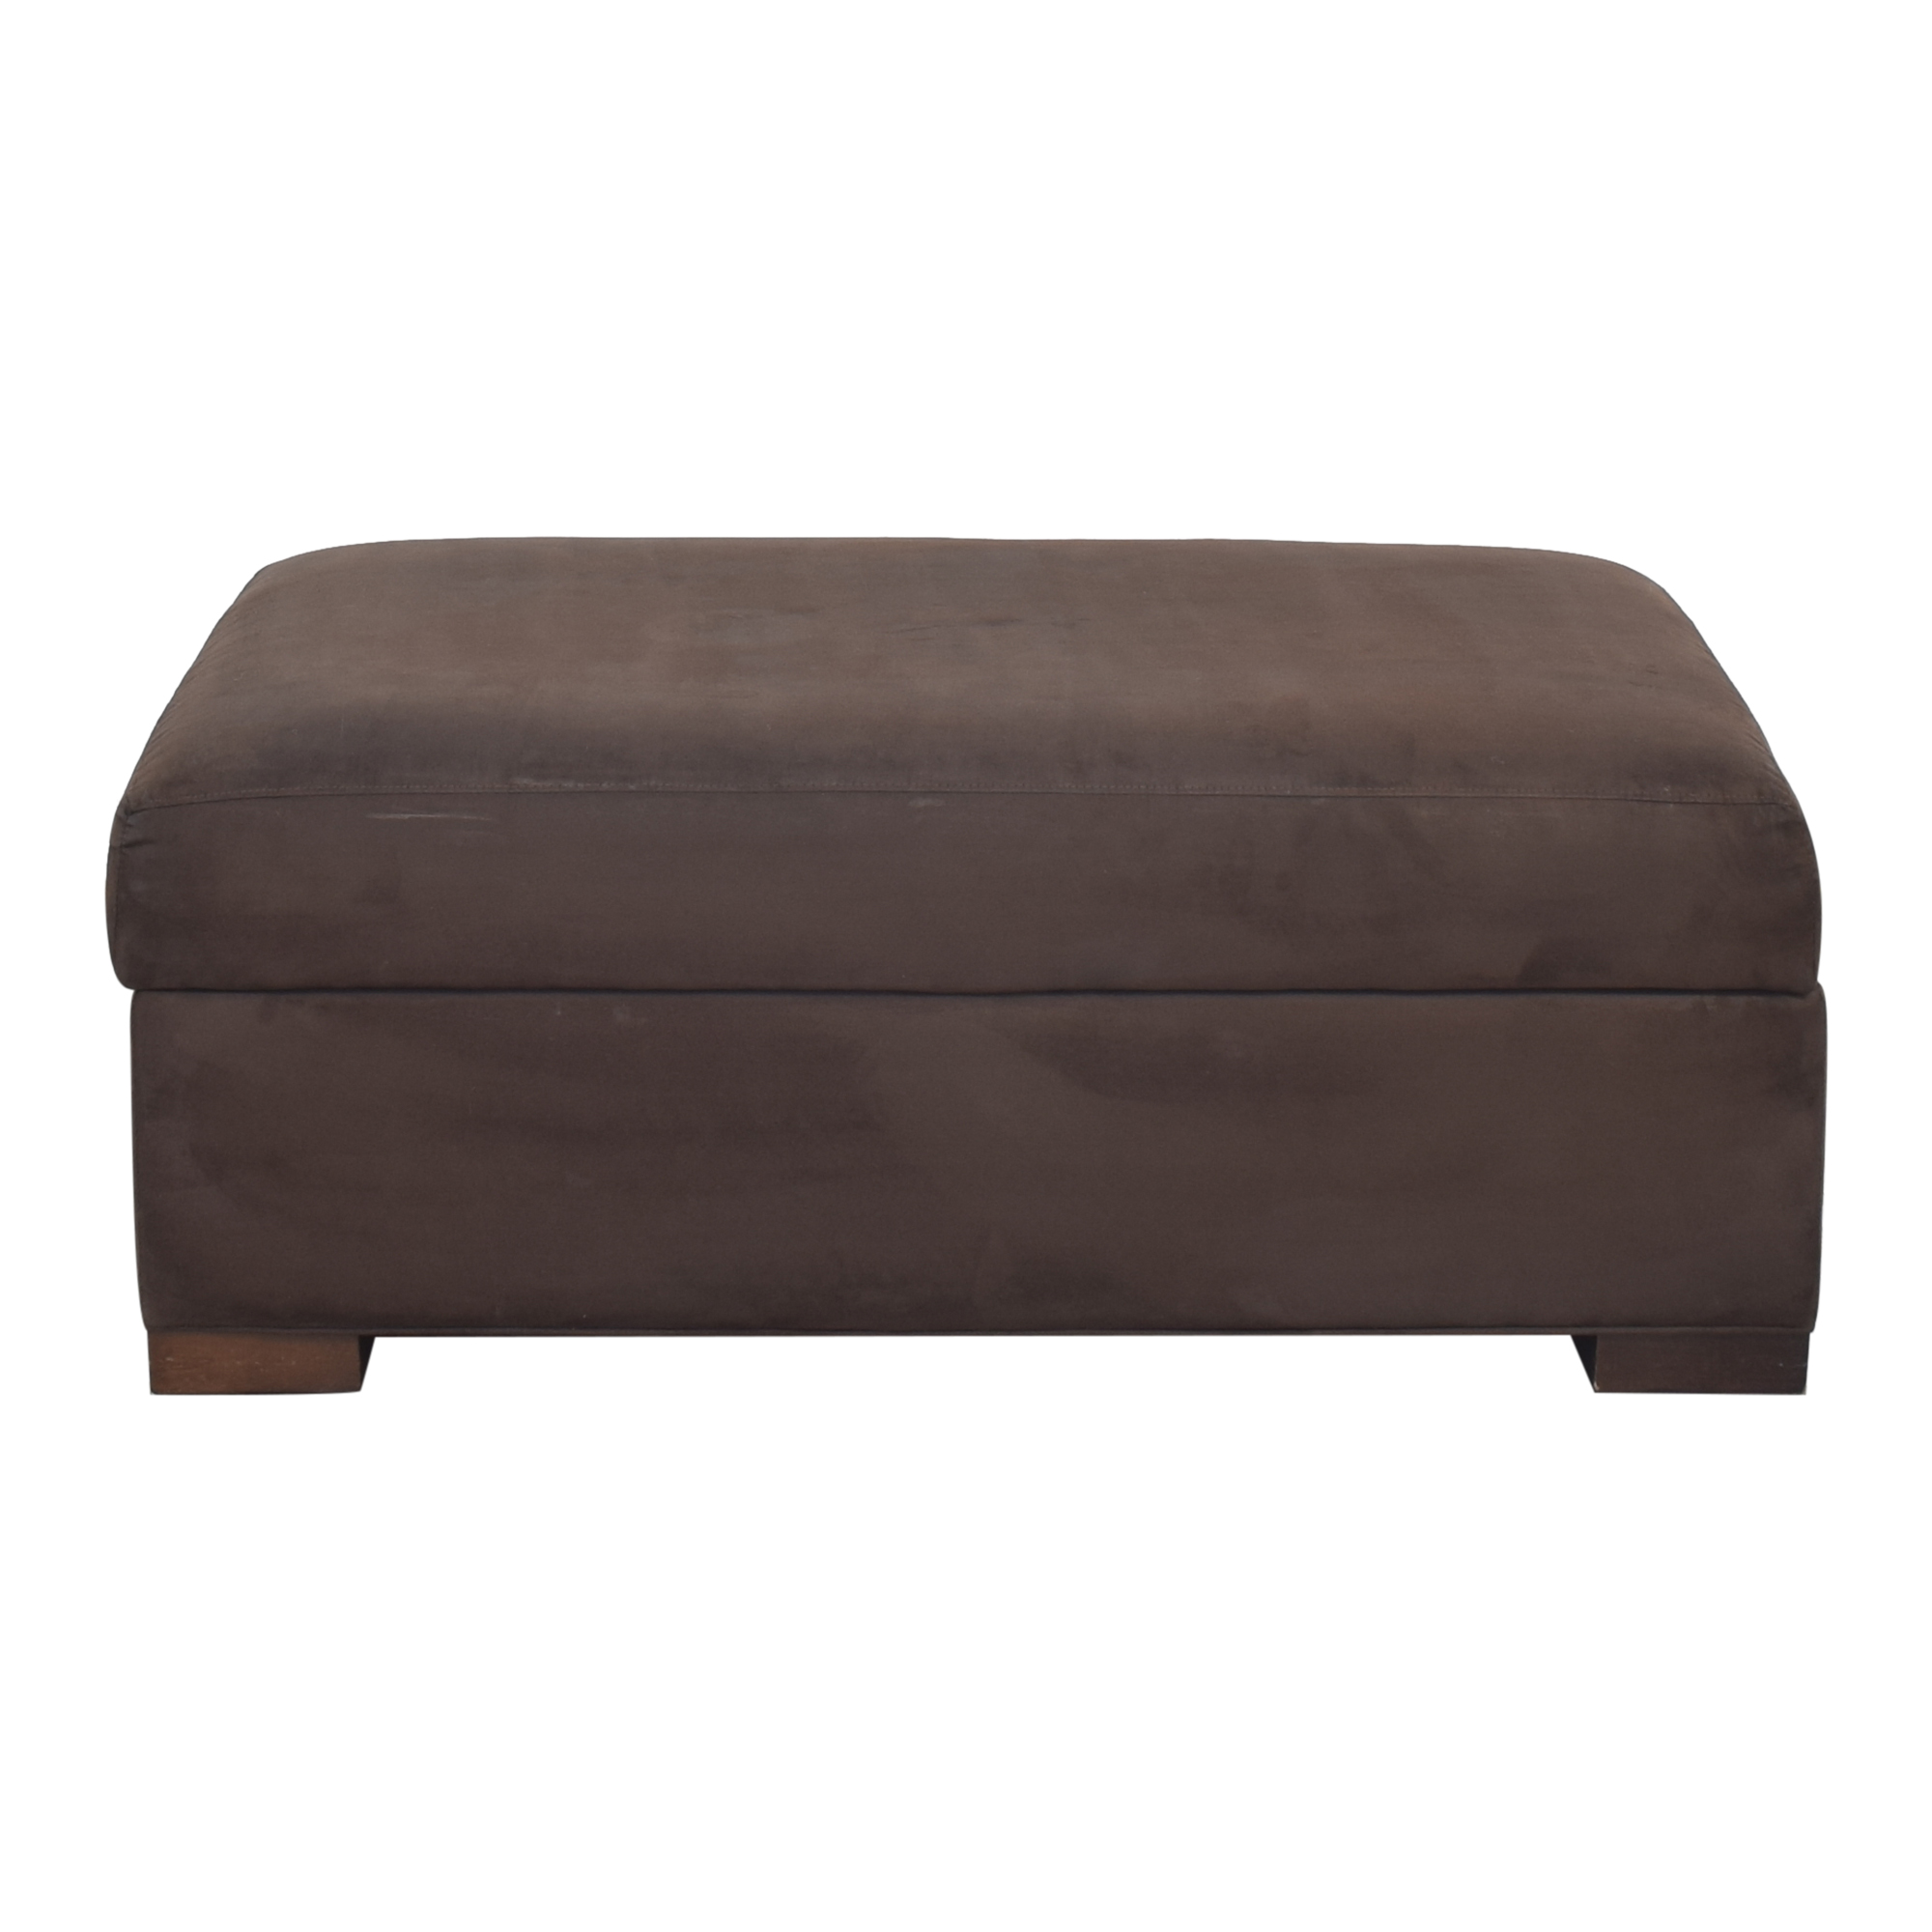 Crate & Barrel Crate & Barrel Axis II Ottoman and a Half Storage